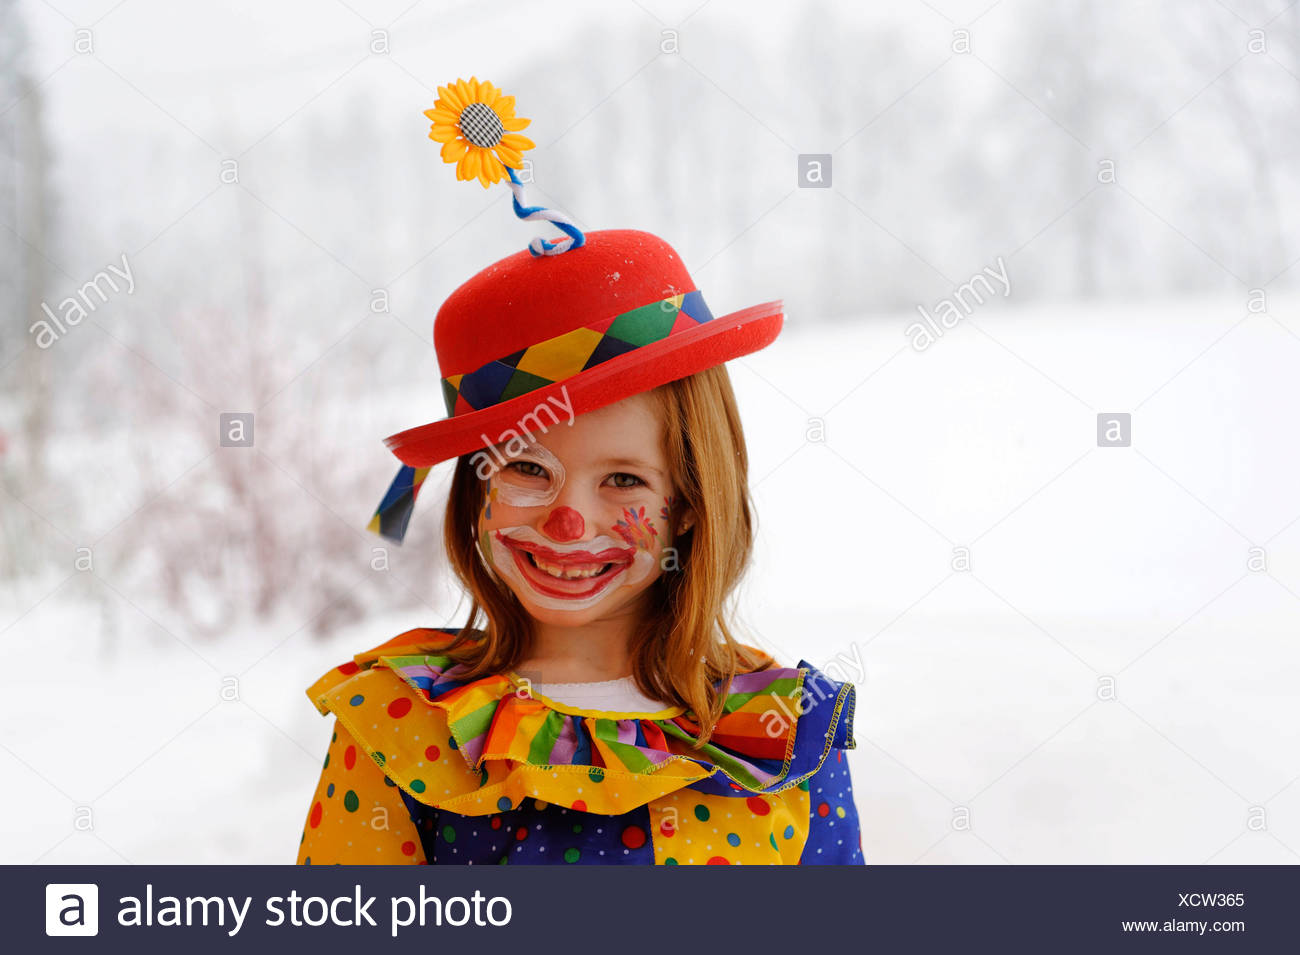 Clown girl in carnival costume - Stock Image